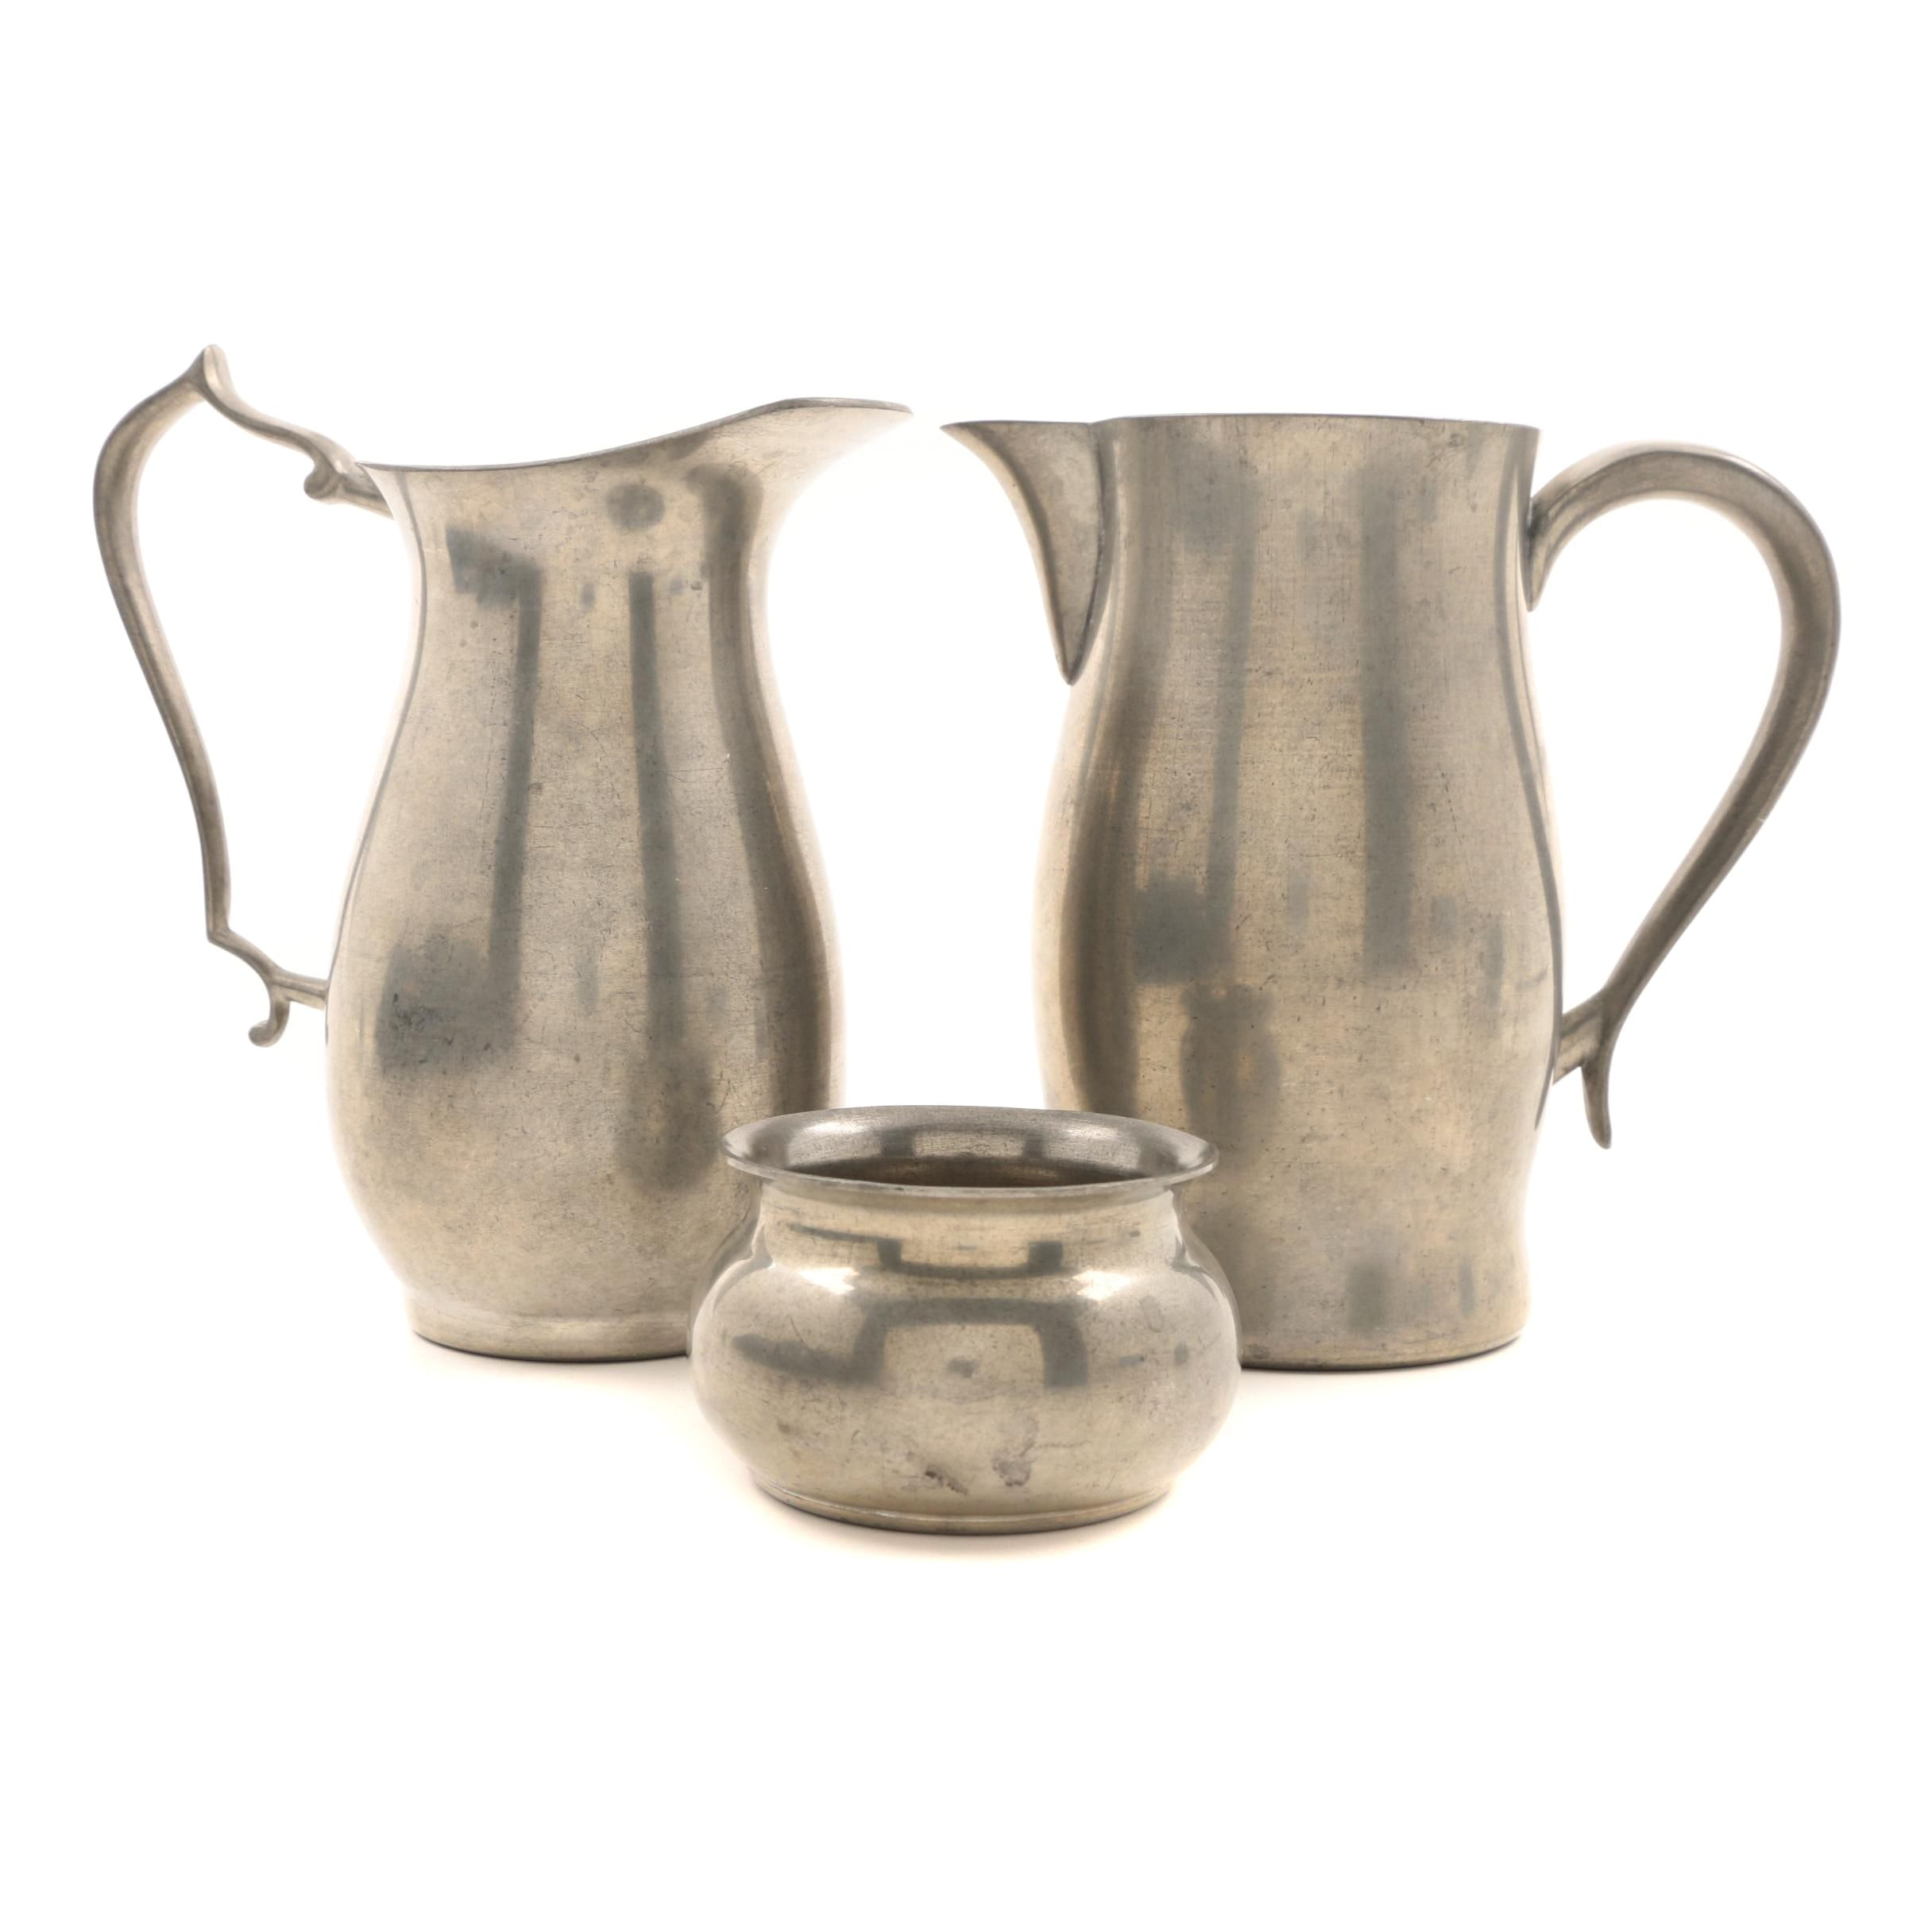 Woodbury Pewter Pitchers and Pot